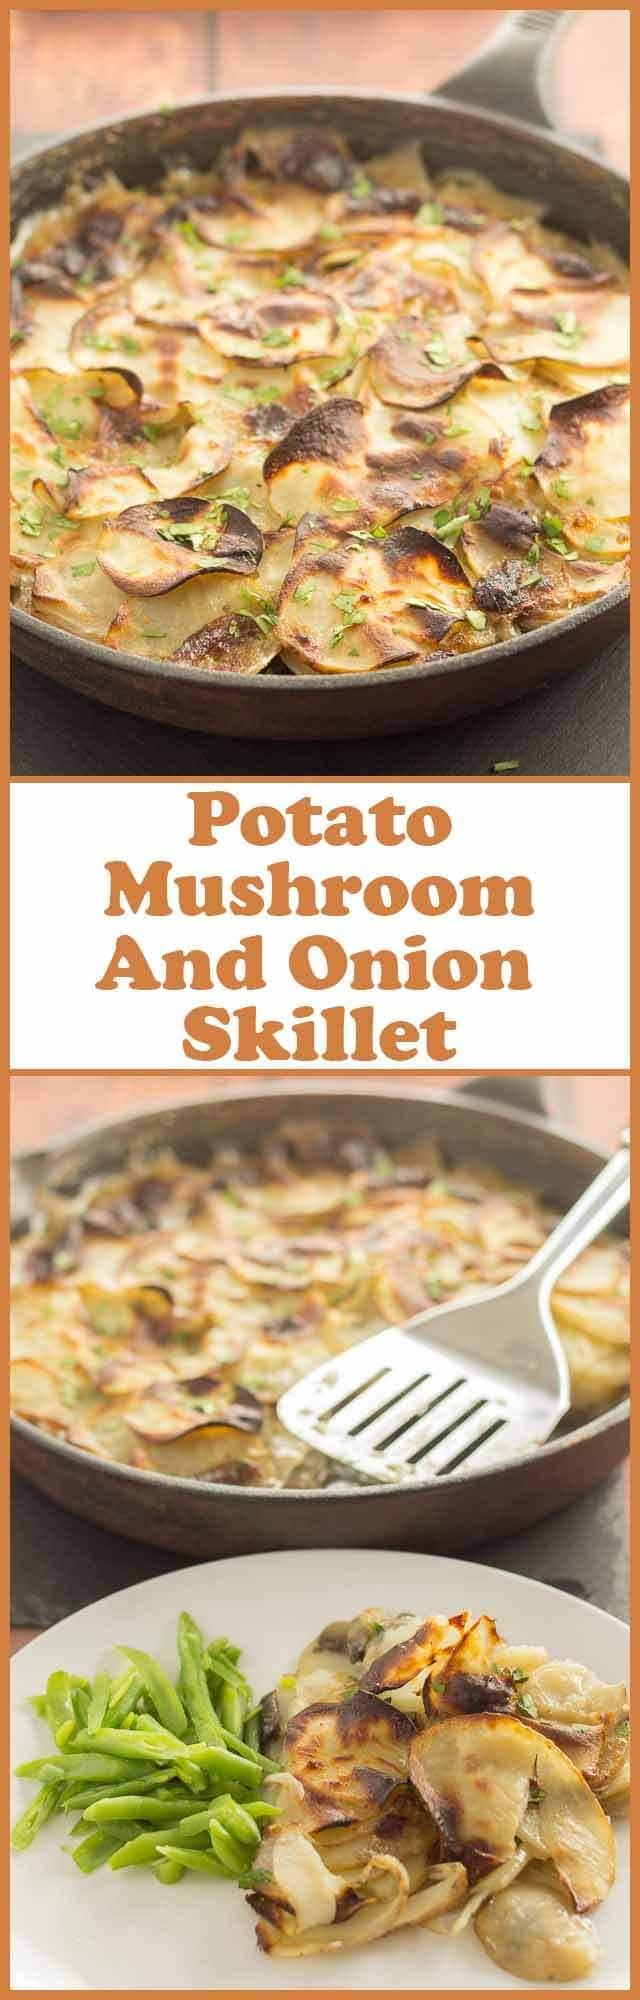 Potato mushroom and onion skillet is a perfect go-to recipe for when you're short of time and looking for a quick budget meal all in one pan.